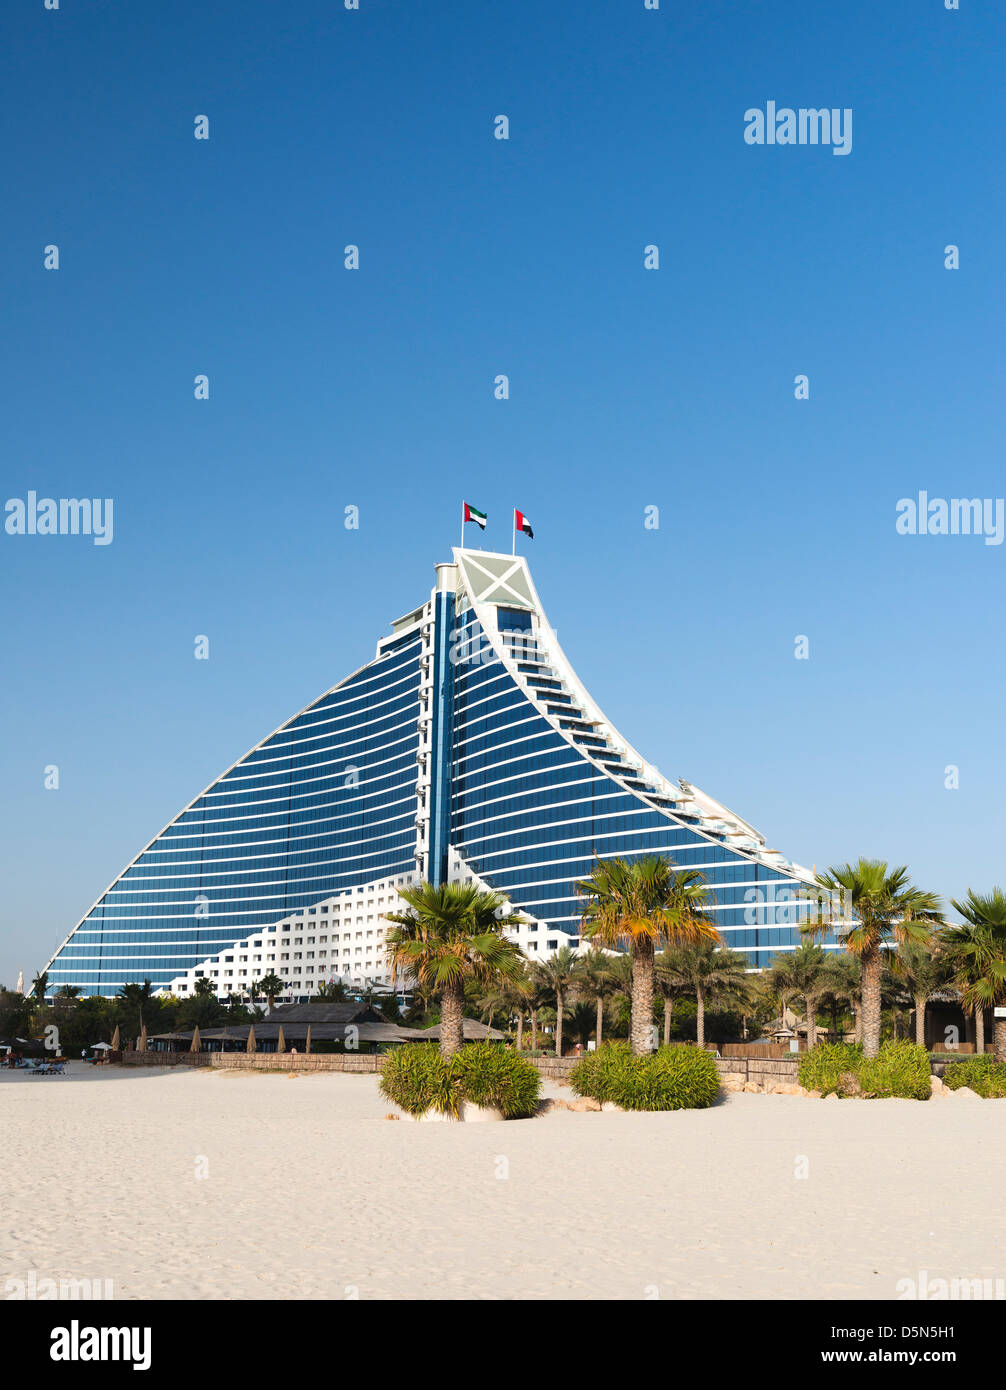 Luxus Jumeirah Beach Hotel in Dubai Vereinigte Arabische Emirate Stockbild